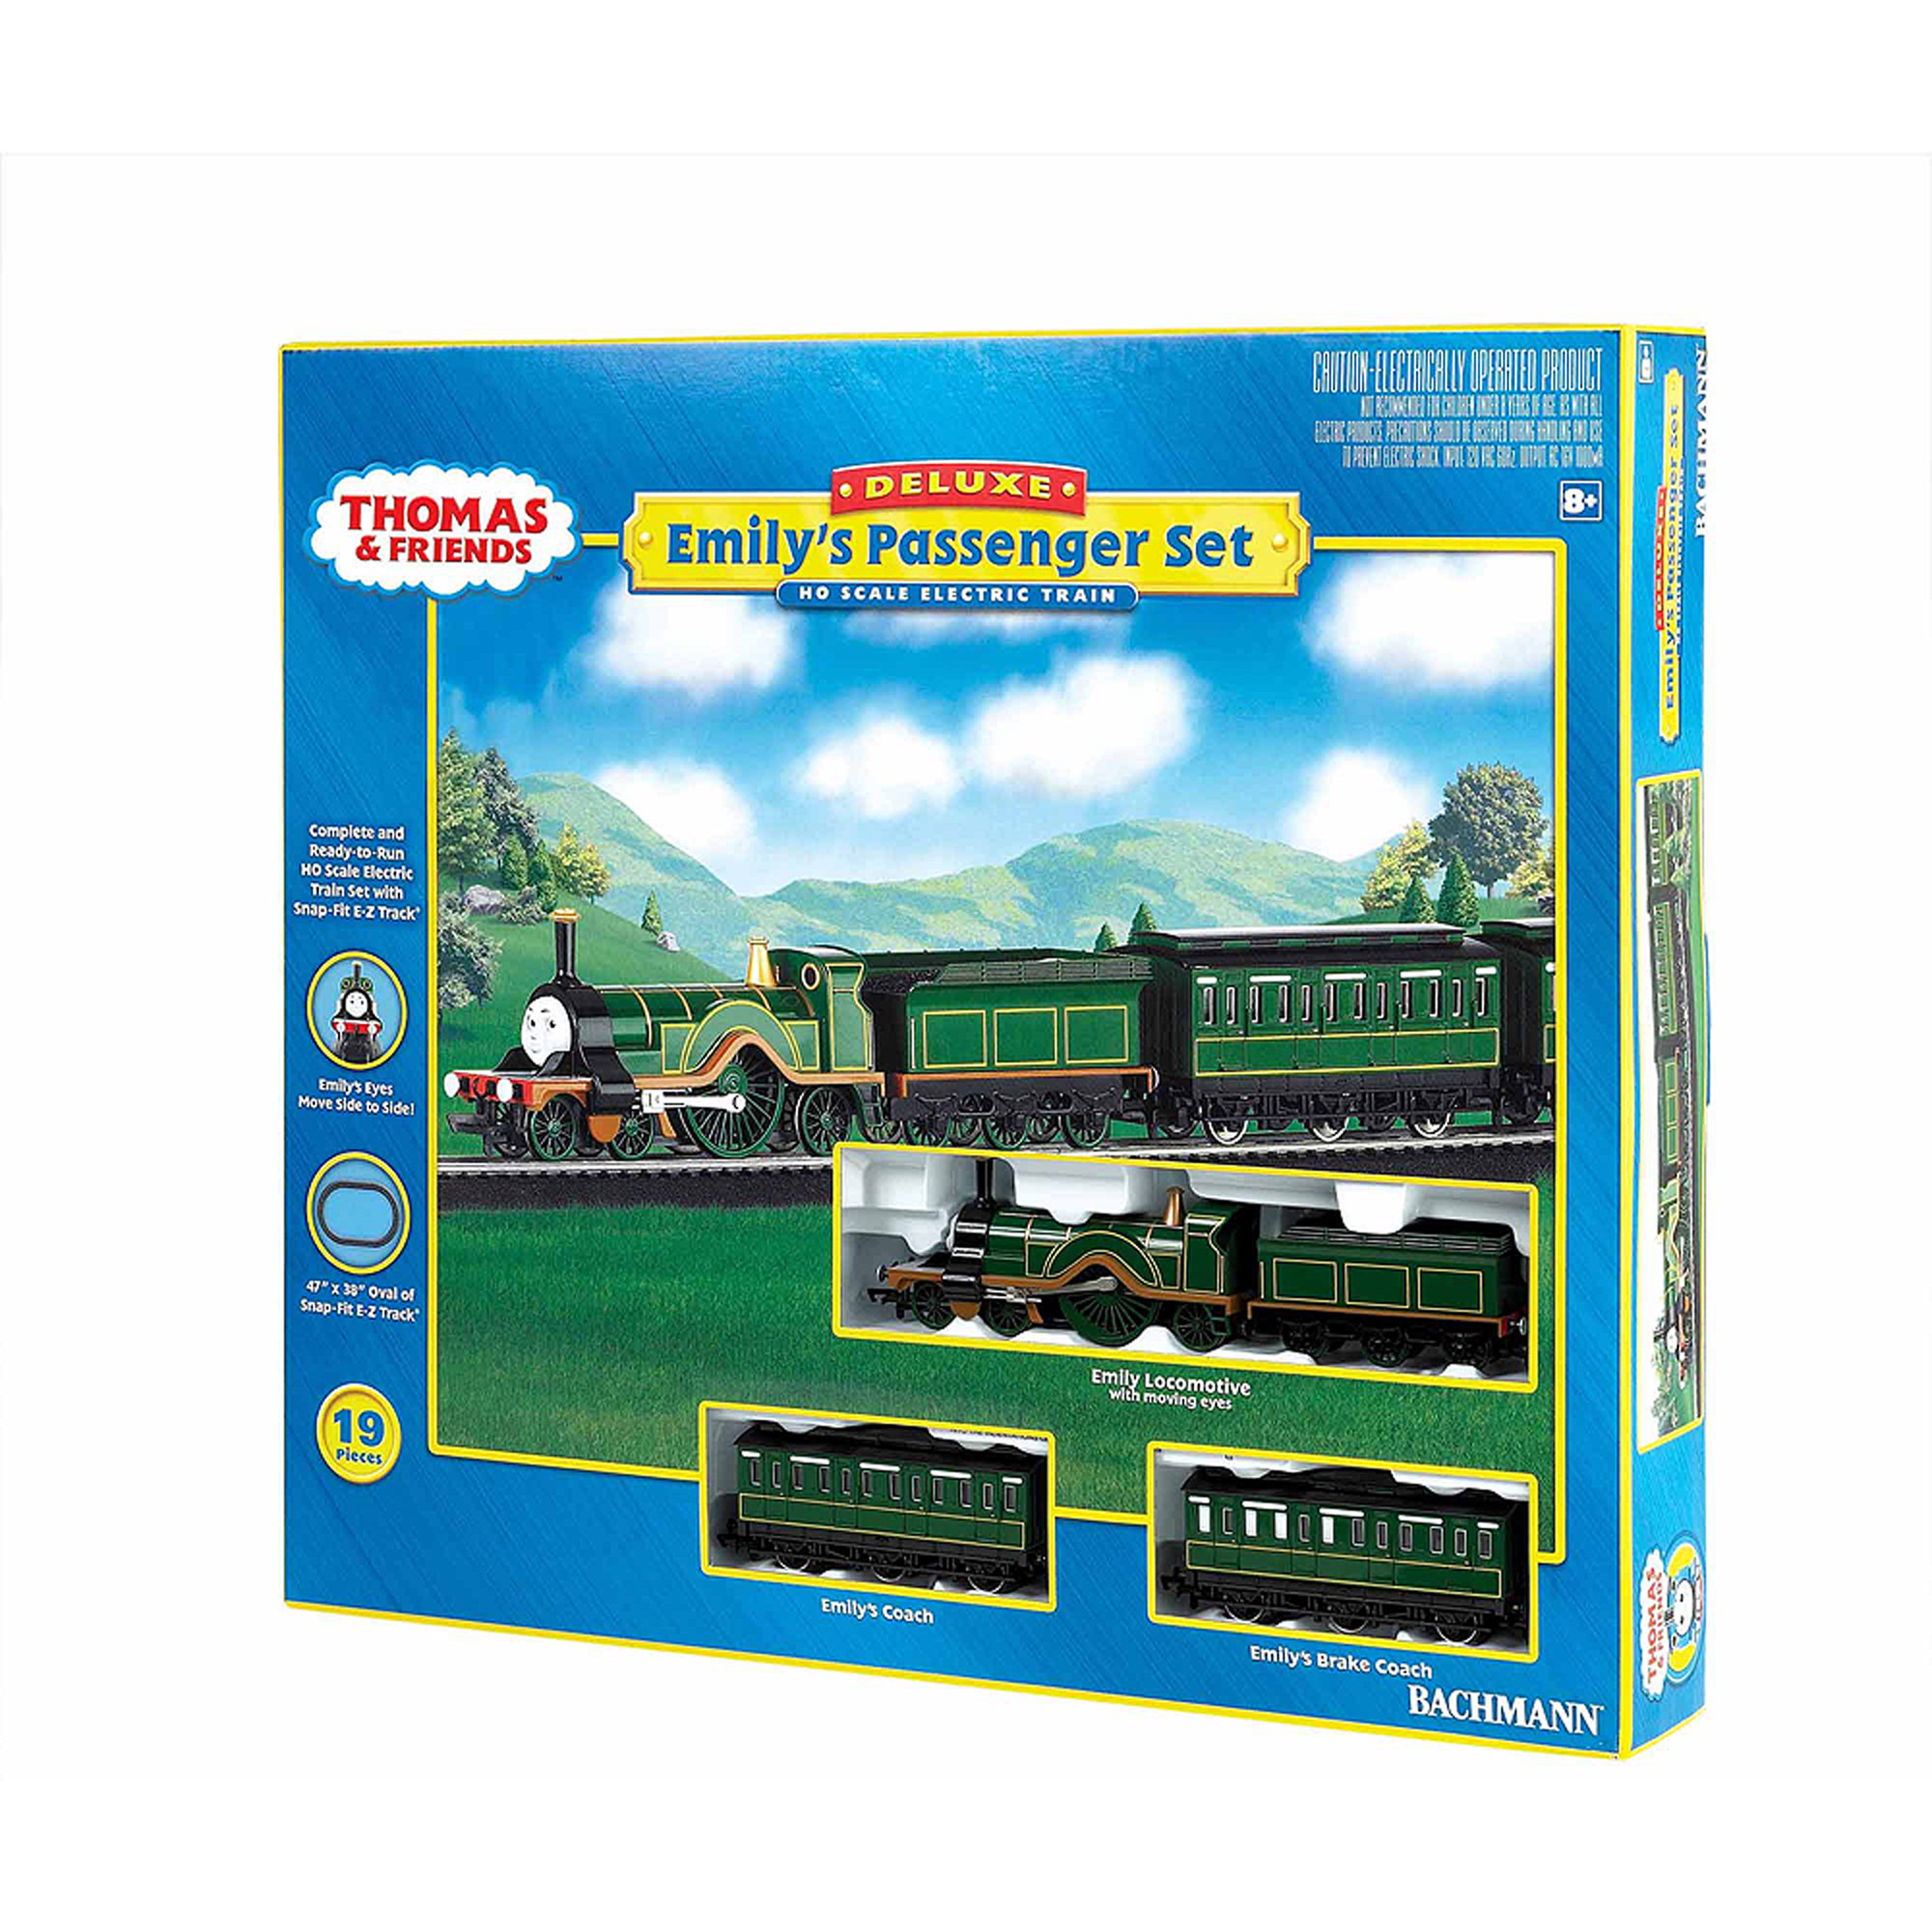 Bachmann Trains Thomas and Friends Emily's Passenger Set, HO Scale Ready-to-Run Electric Train Set